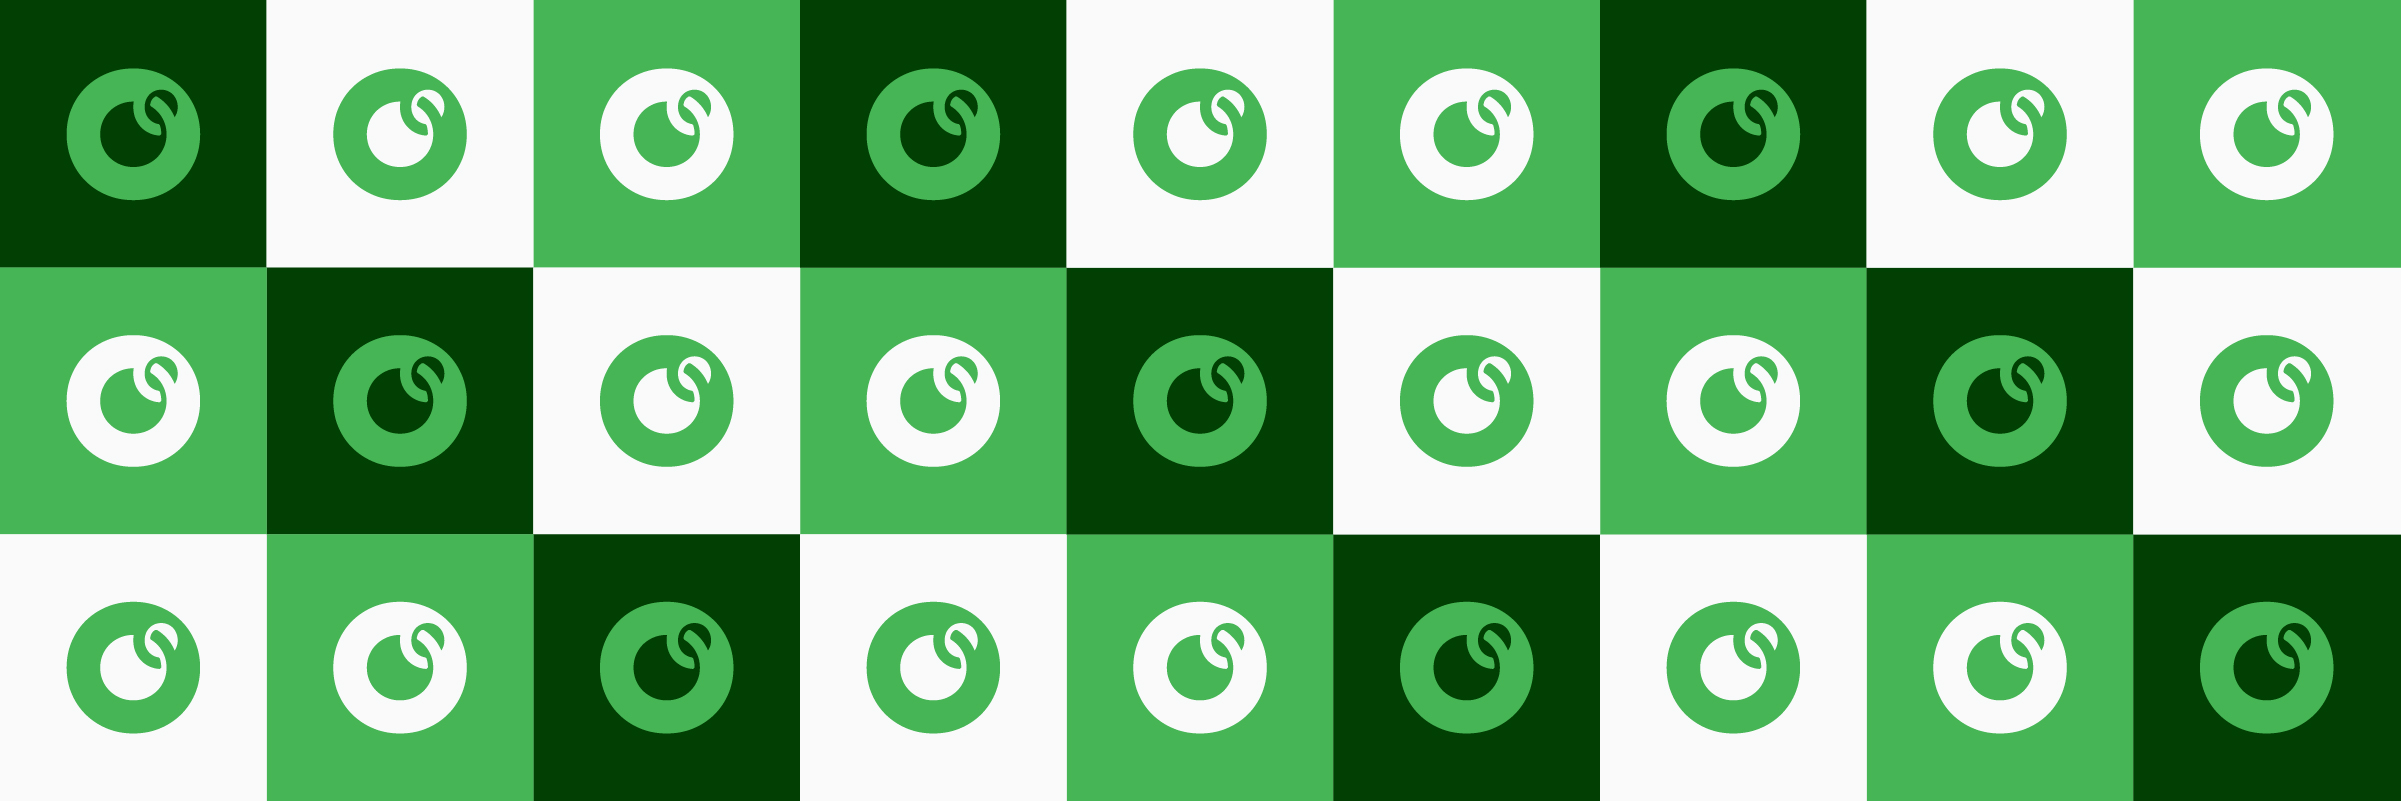 Omnicell Symbol Color Combinations